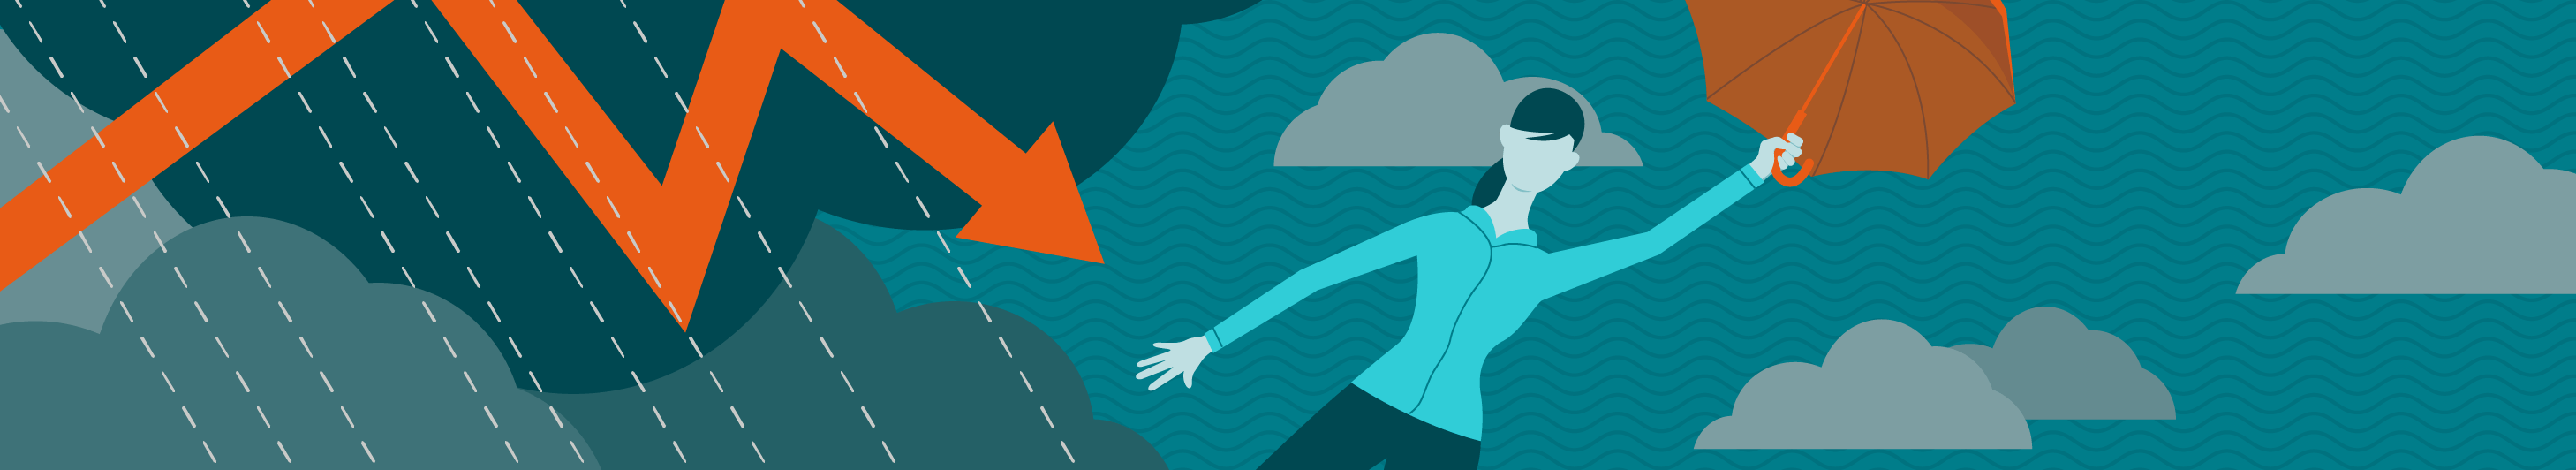 illustration of a woman holding an orange umbrella in severe weather